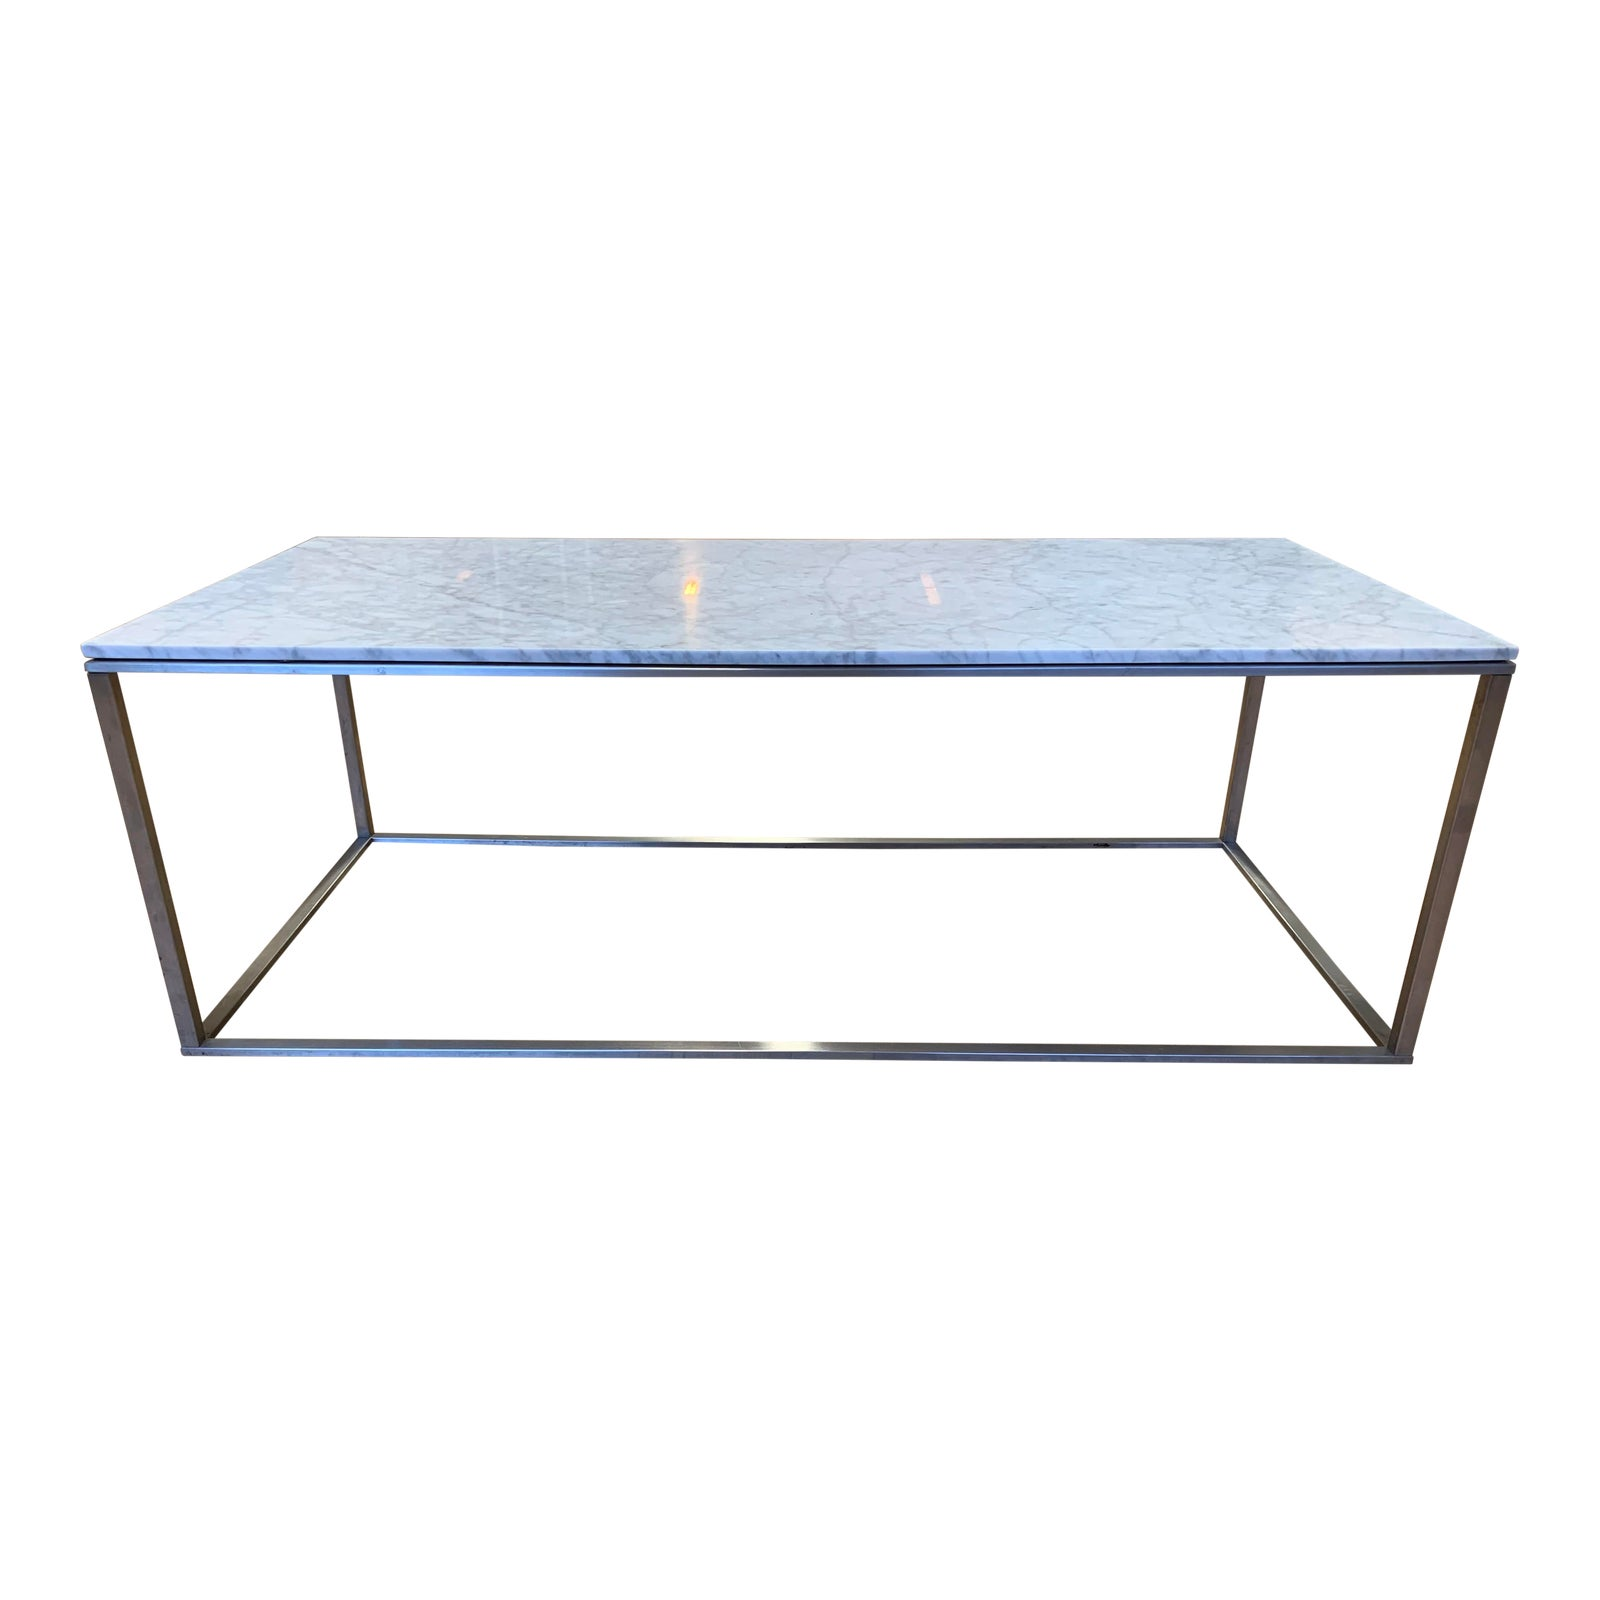 Super Blu Dot Minimalista Marble Coffee Table Original Price Caraccident5 Cool Chair Designs And Ideas Caraccident5Info